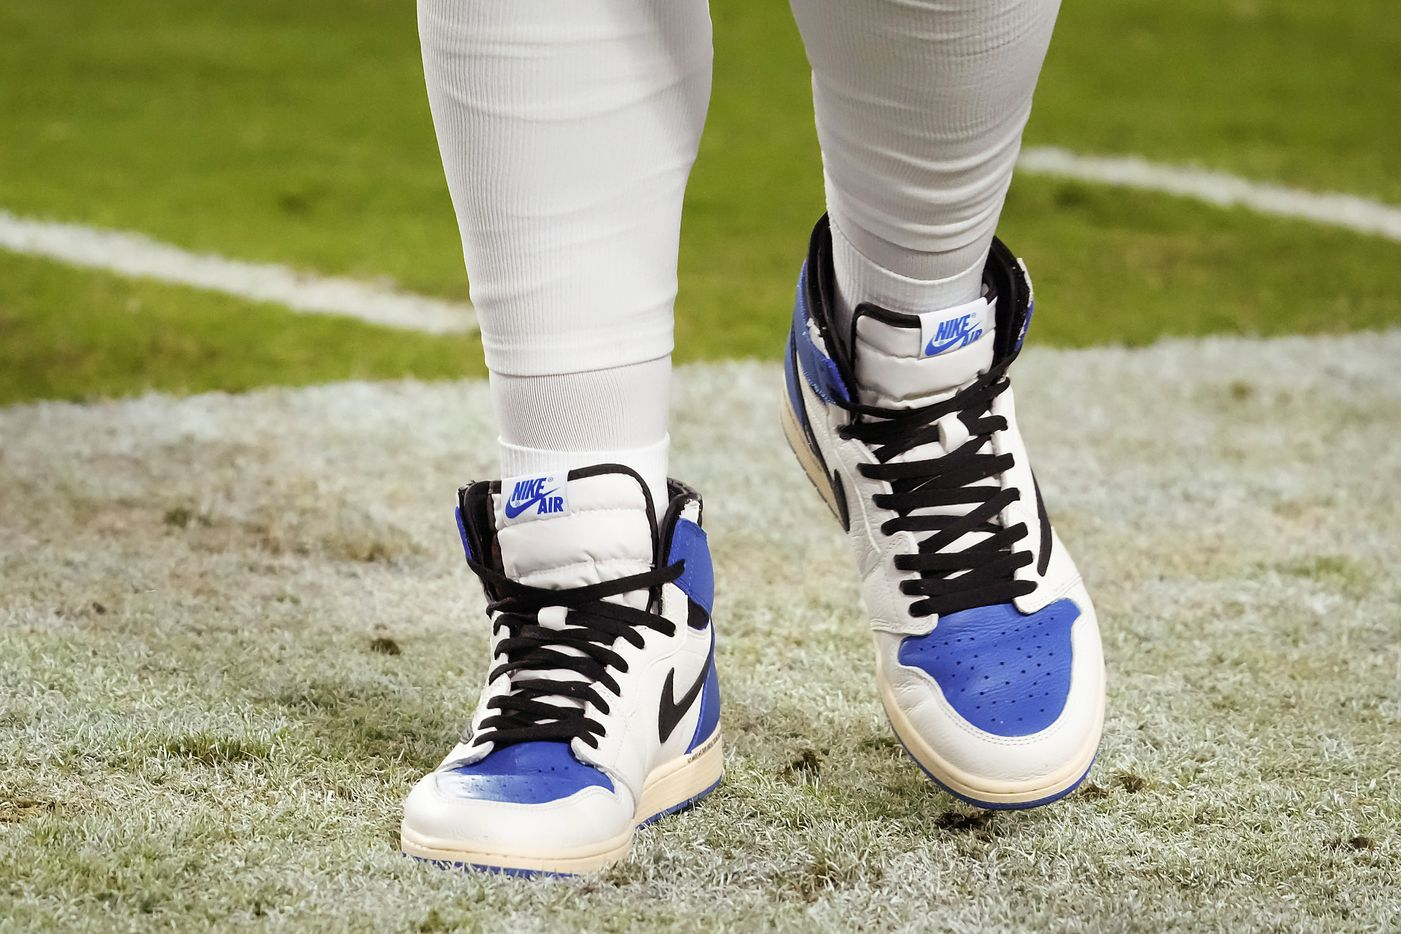 Dallas Cowboys quarterback Dak Prescott wears sneakers on the sidelines during the second half of a preseason NFL football game against the Arizona Cardinals at State Farm Stadium on Friday, Aug. 13, 2021, in Glendale, Ariz.